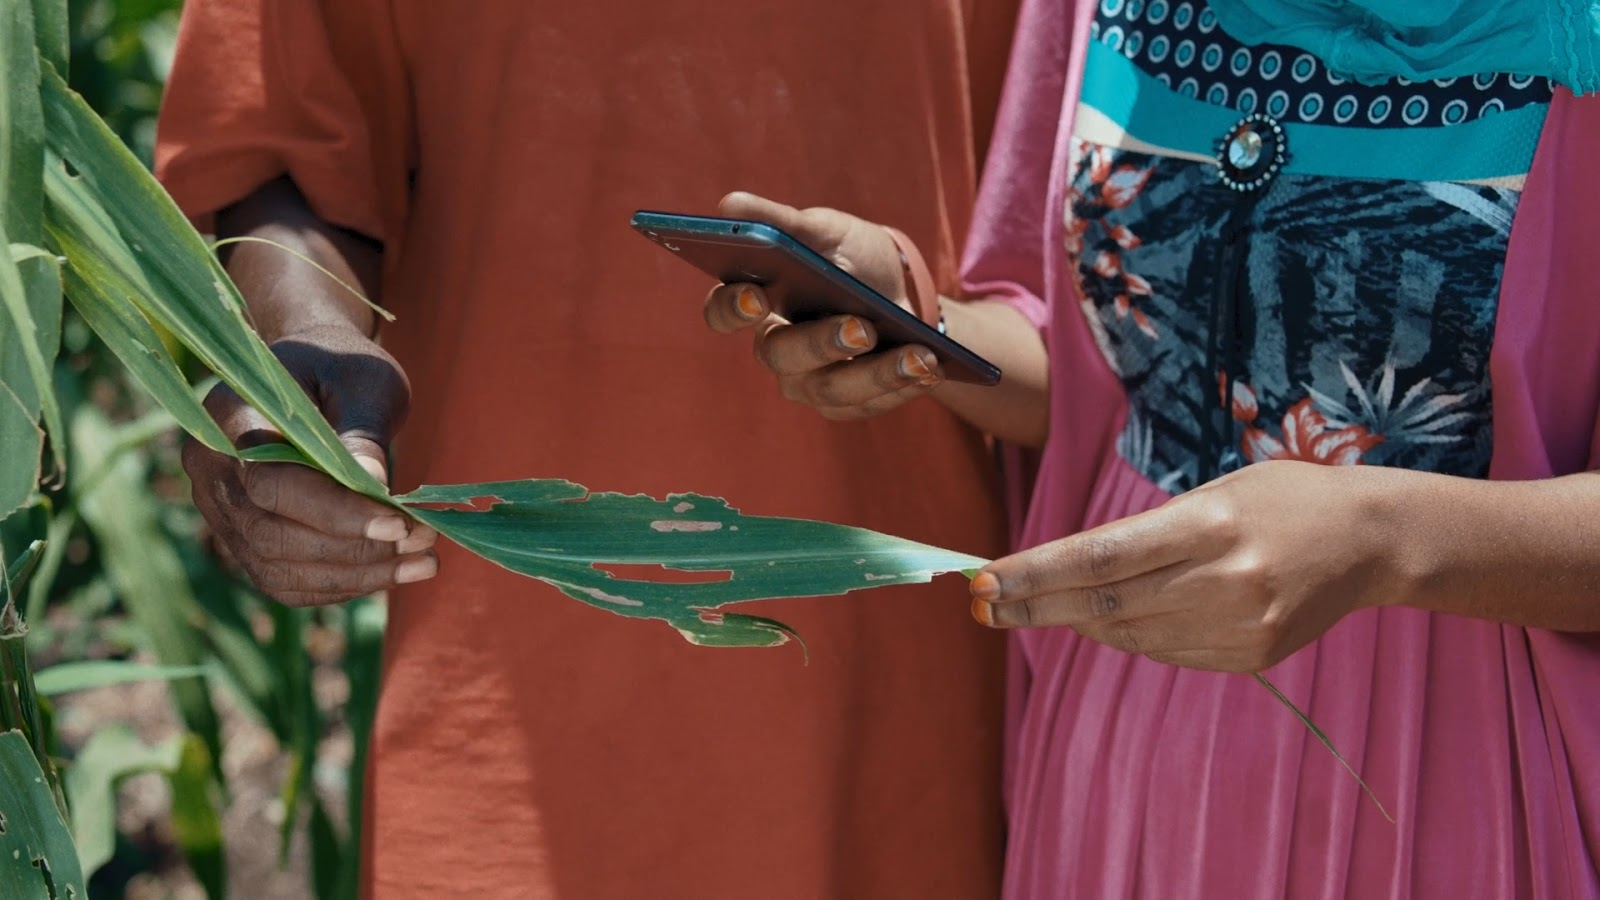 Demonstration of the Android app identifying the Fall armyworm